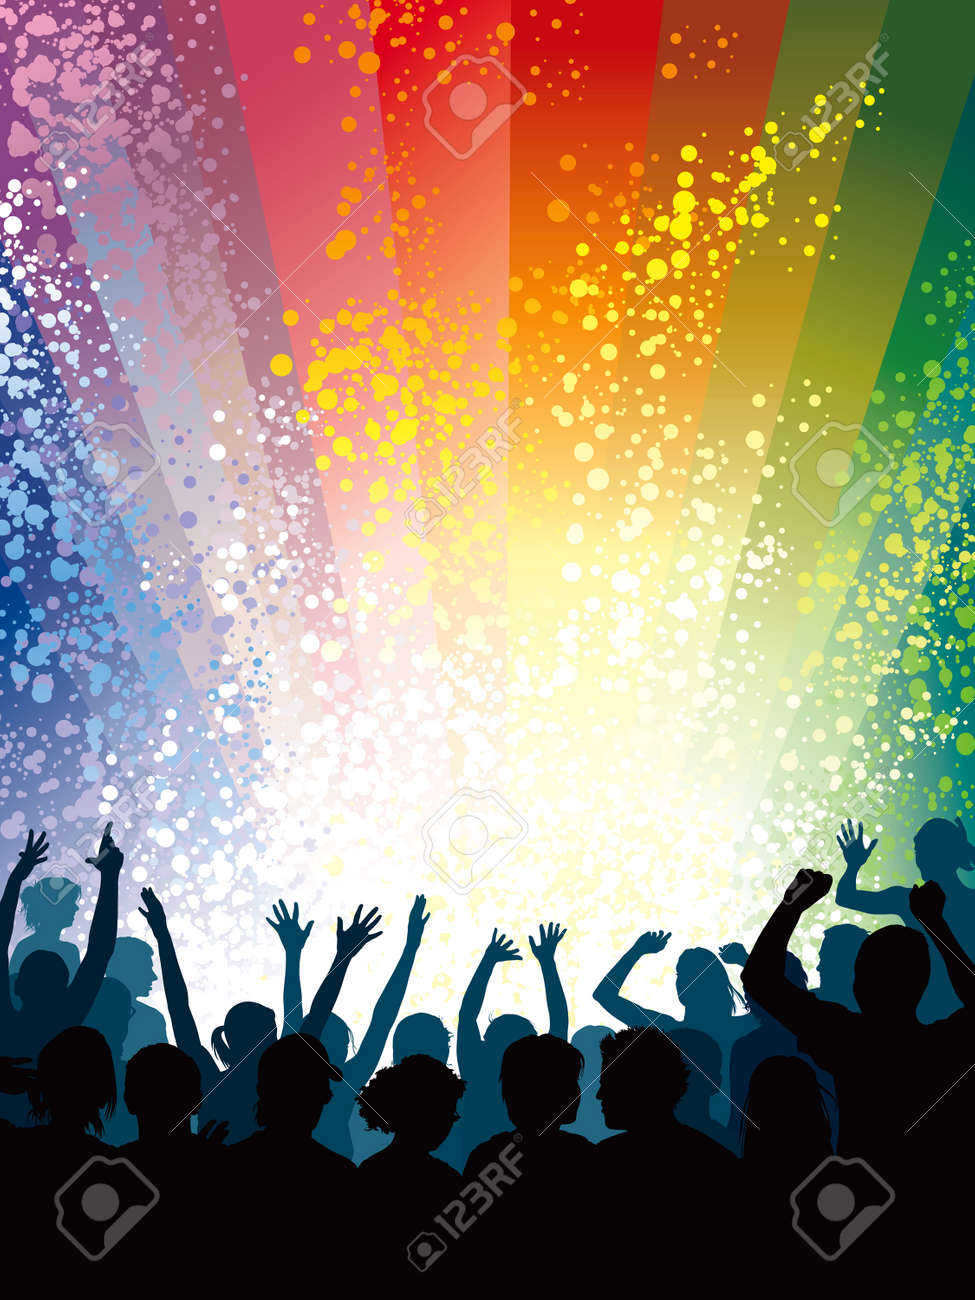 Concert crowd, a large group of cheering people. Stock Vector - 5576474